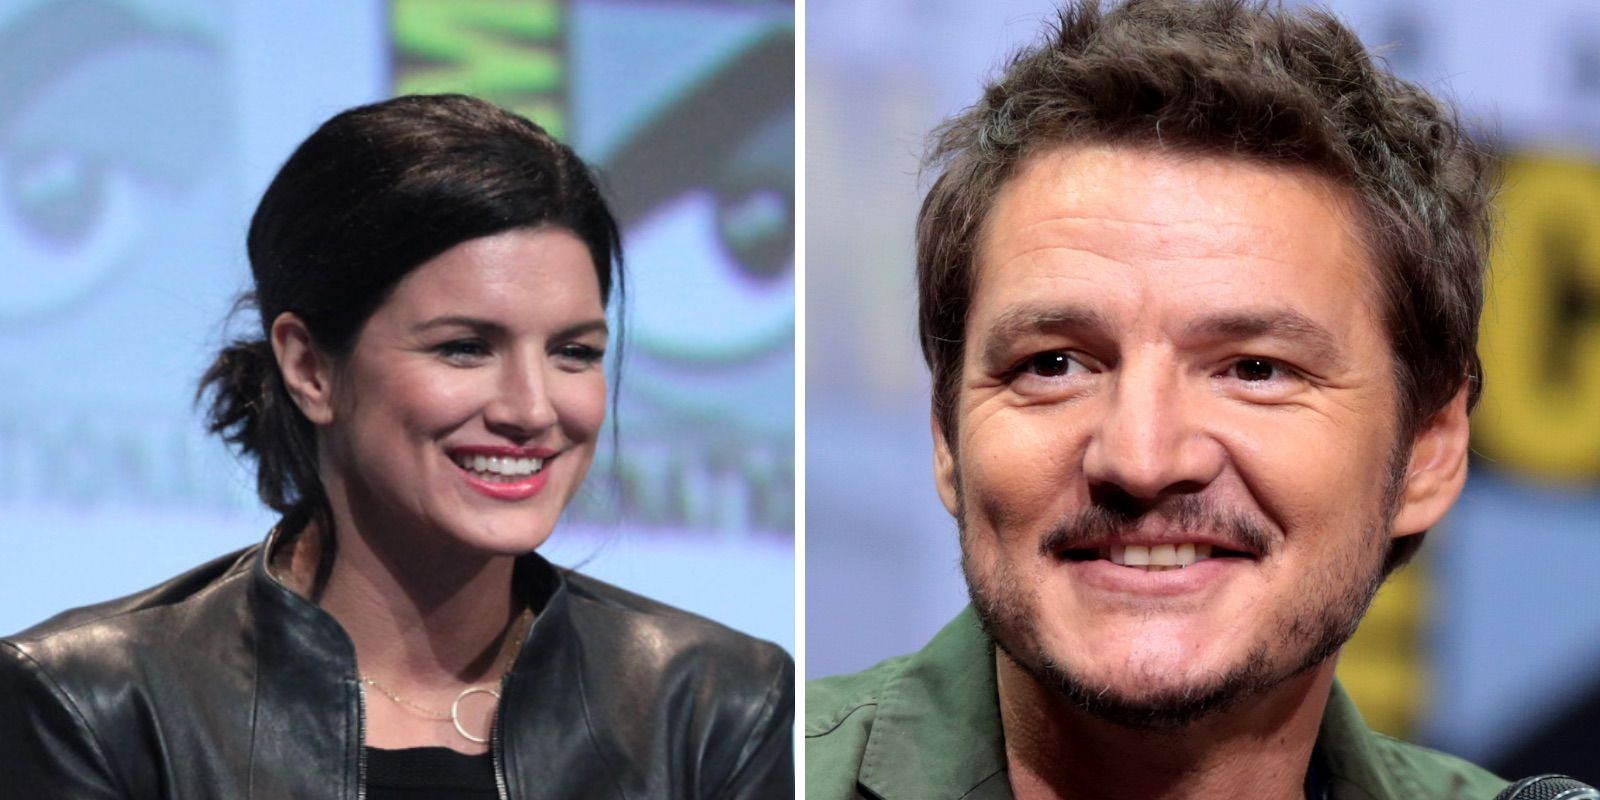 HYPOCRISY: Mandalorian star Pedro Pascal compared Trump's America to Nazi Germany